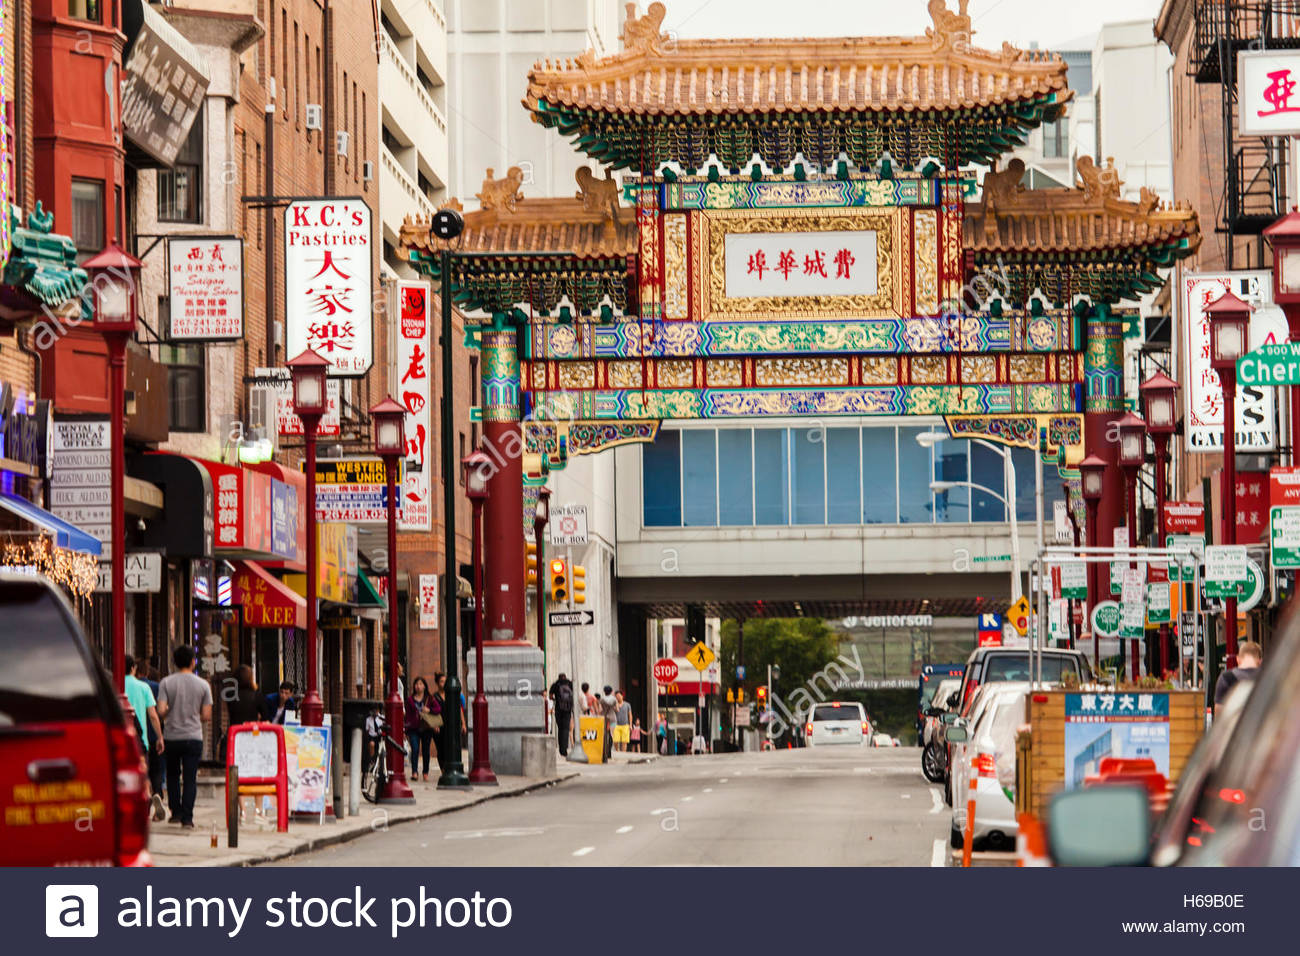 Street view of the ornate gate to Philadelphia's Chinatown. - Stock Image